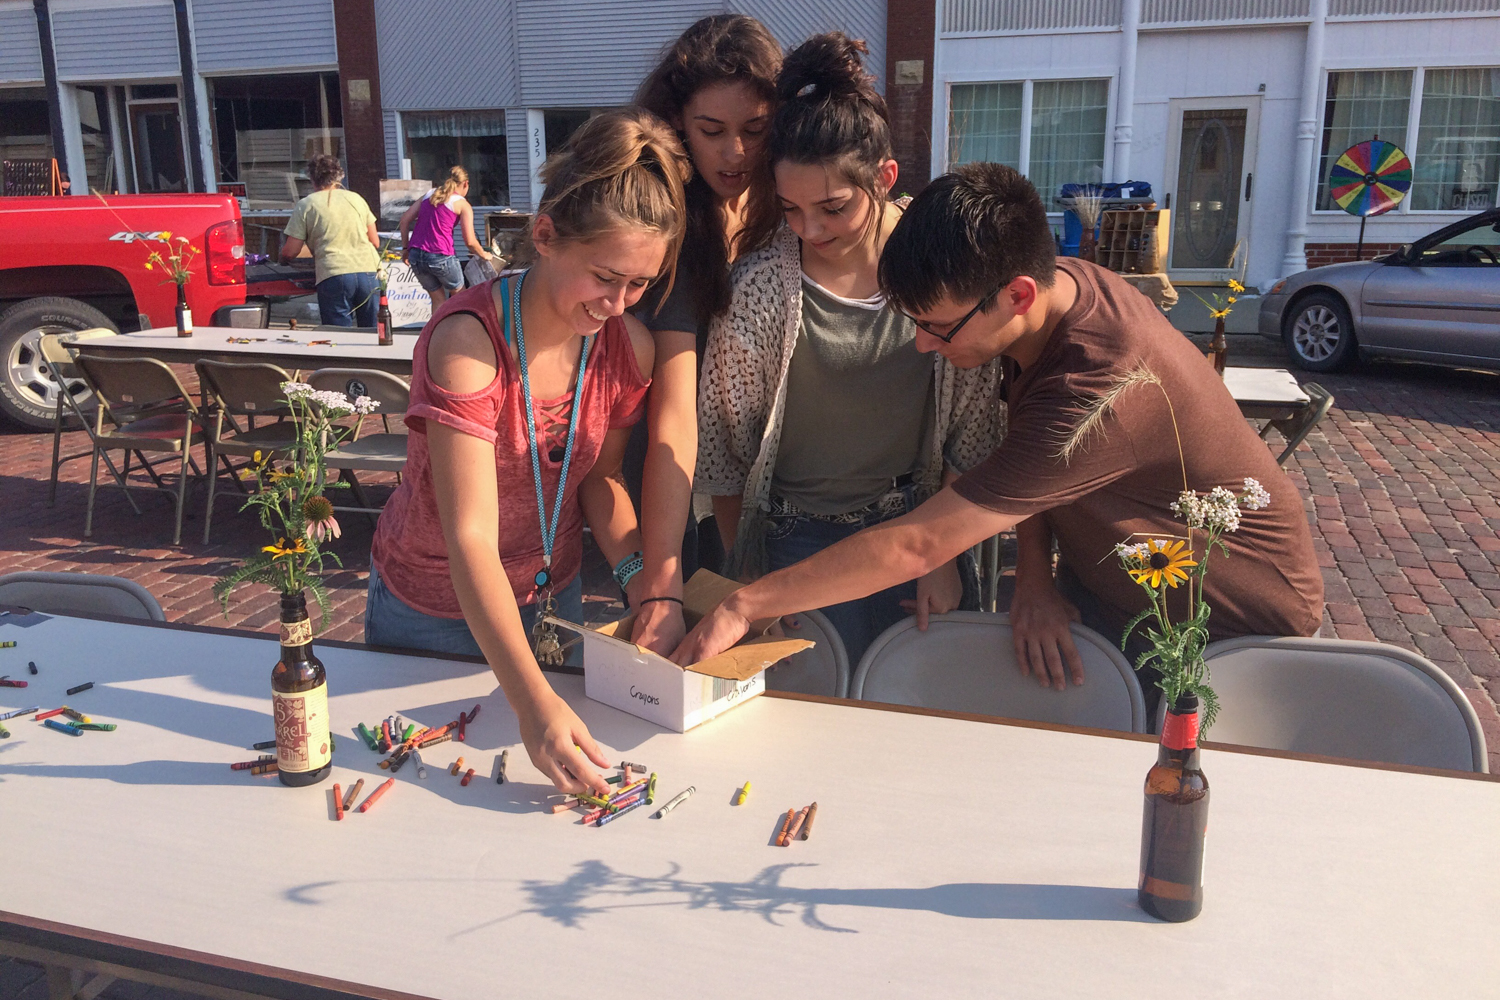 Students help set tables along Main Street with native flowers. Tables covered with paper and crayons invite visitors to sit and doodle.